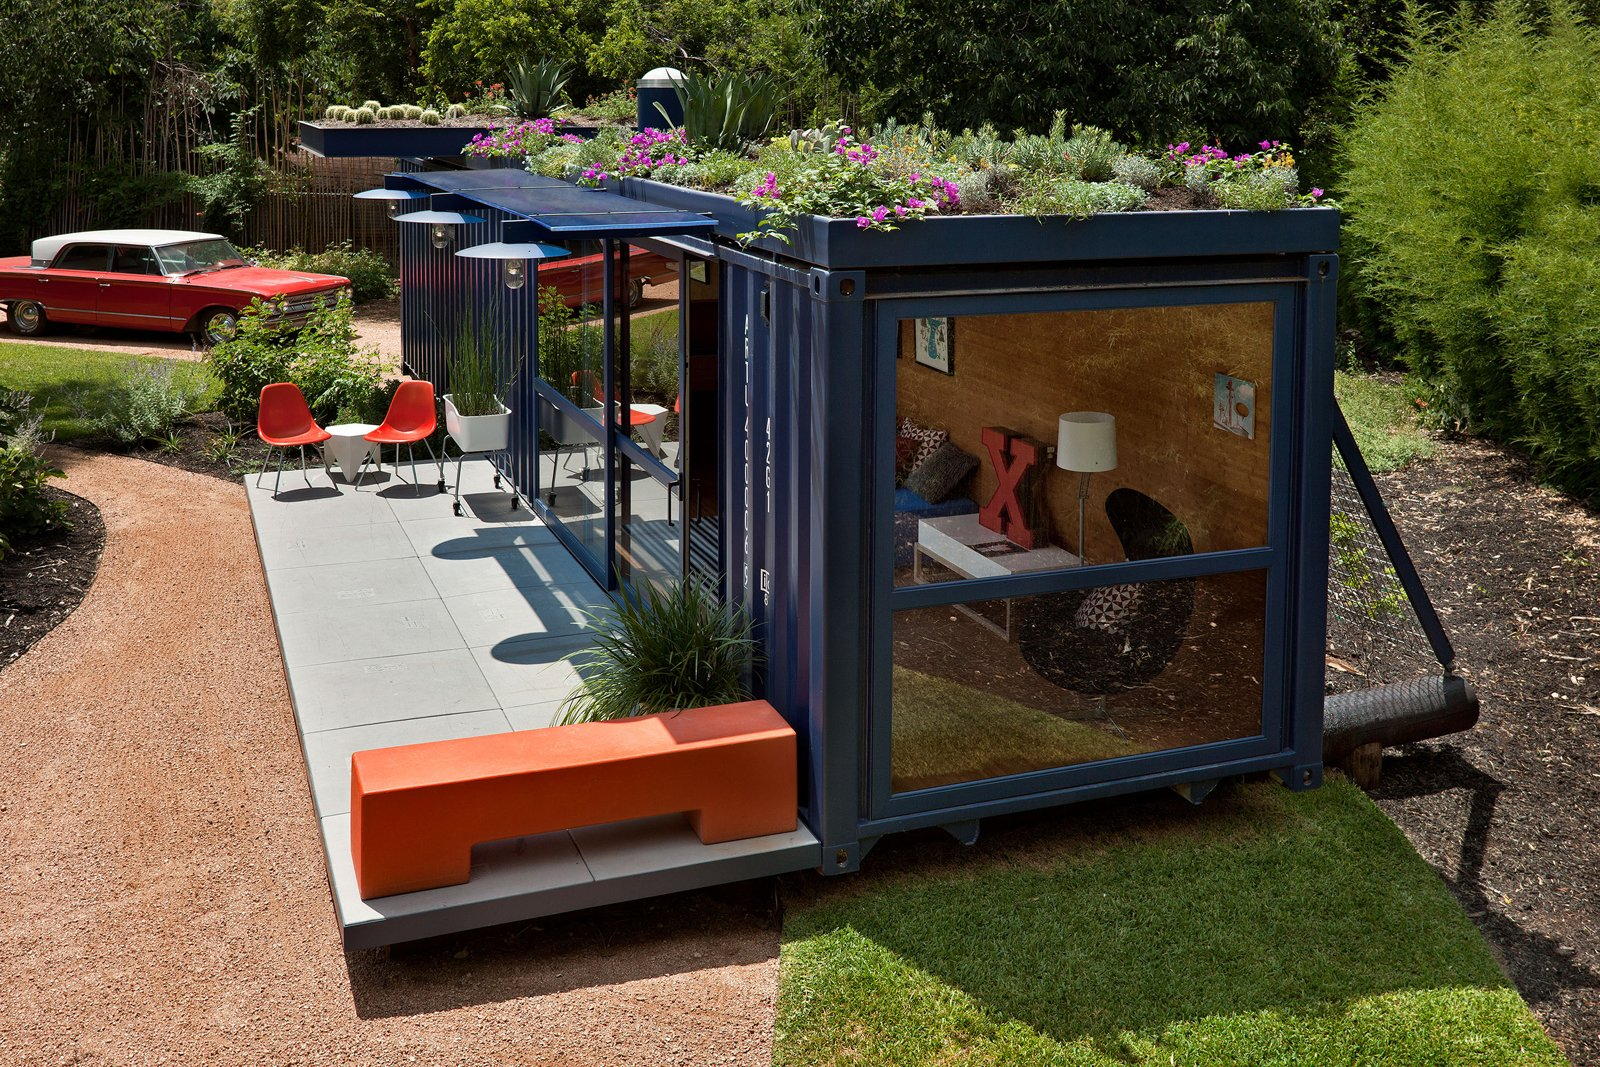 Jon Ahrens of Madrone Landscaping, who layed out the plantings around the container, implemented a green roof on a drip watering system. The cantilevered overhang at rear is planted with cacti.  Shipping Containers by Dwell from Smaller in Texas